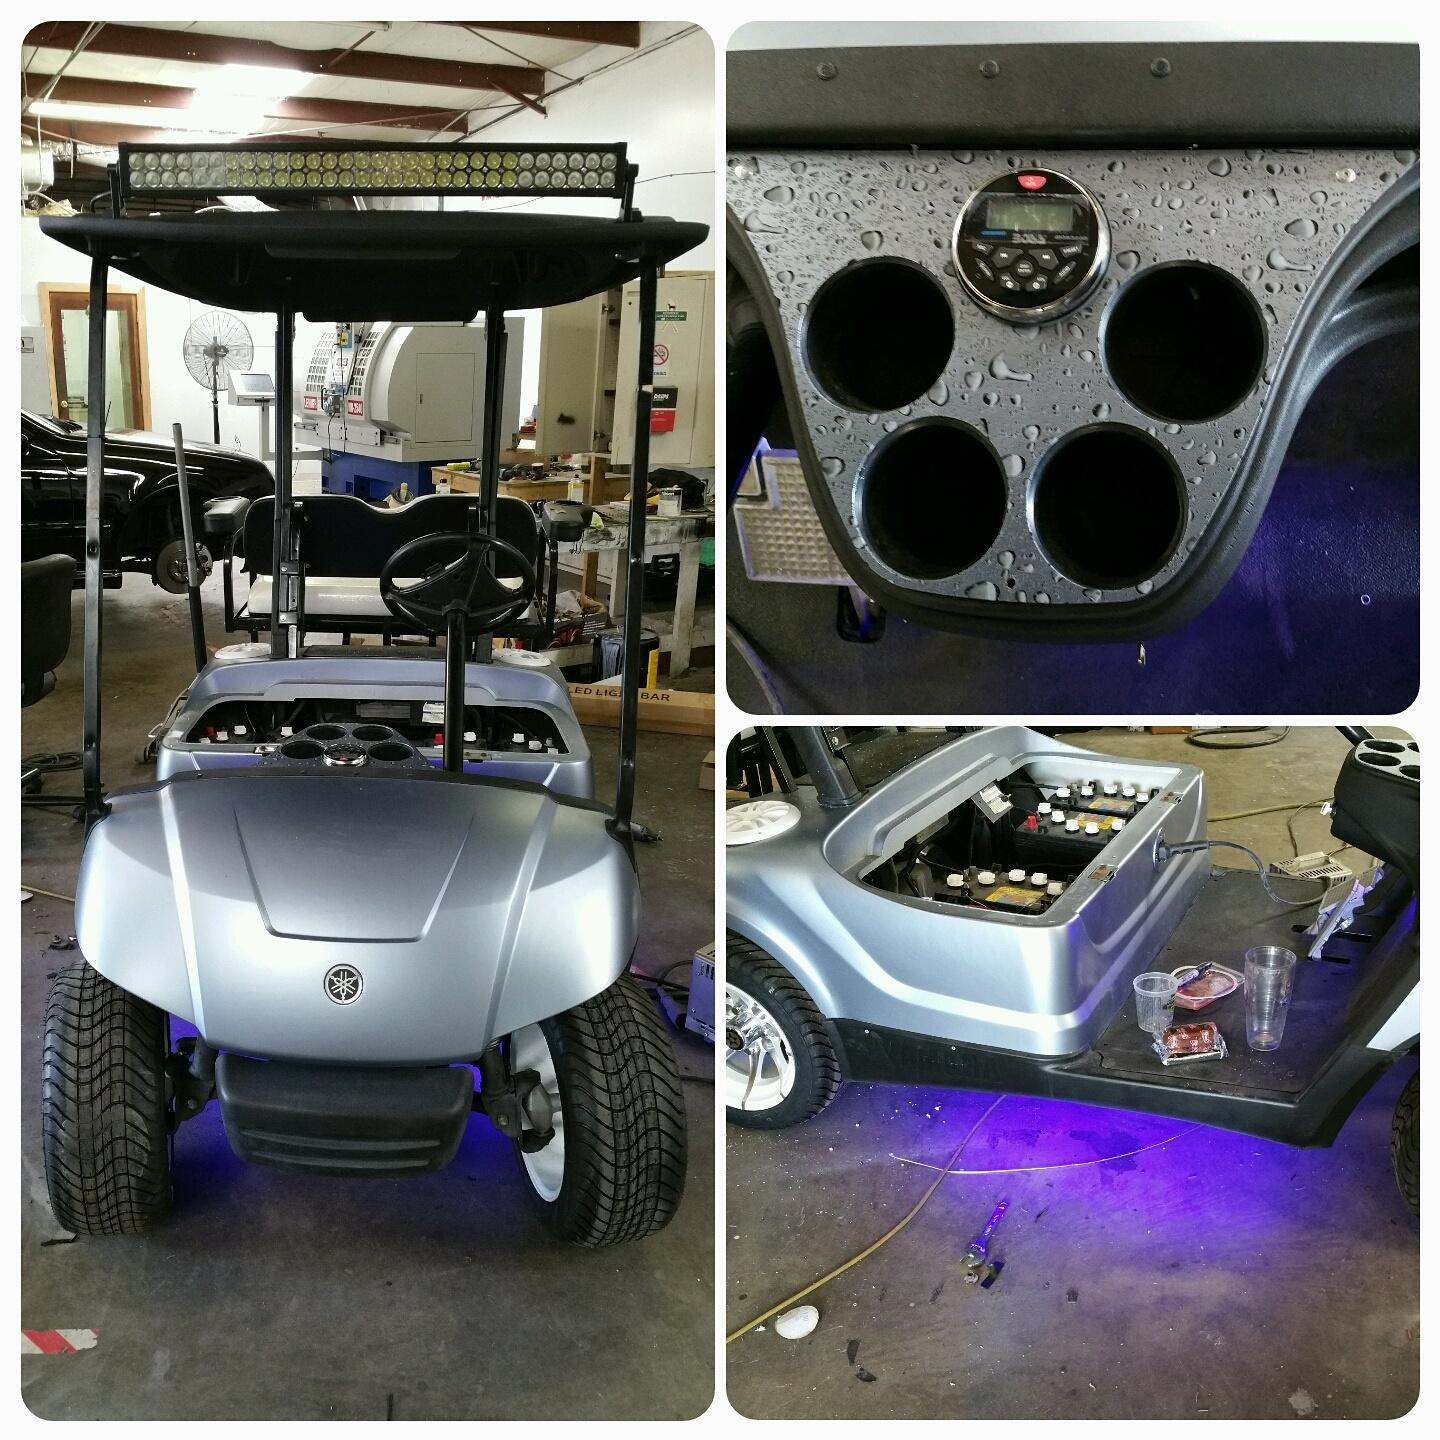 BOSS marine radio with USB and Bluetooth , two BOSS marine speakers, and red LED lights on this golf cart.